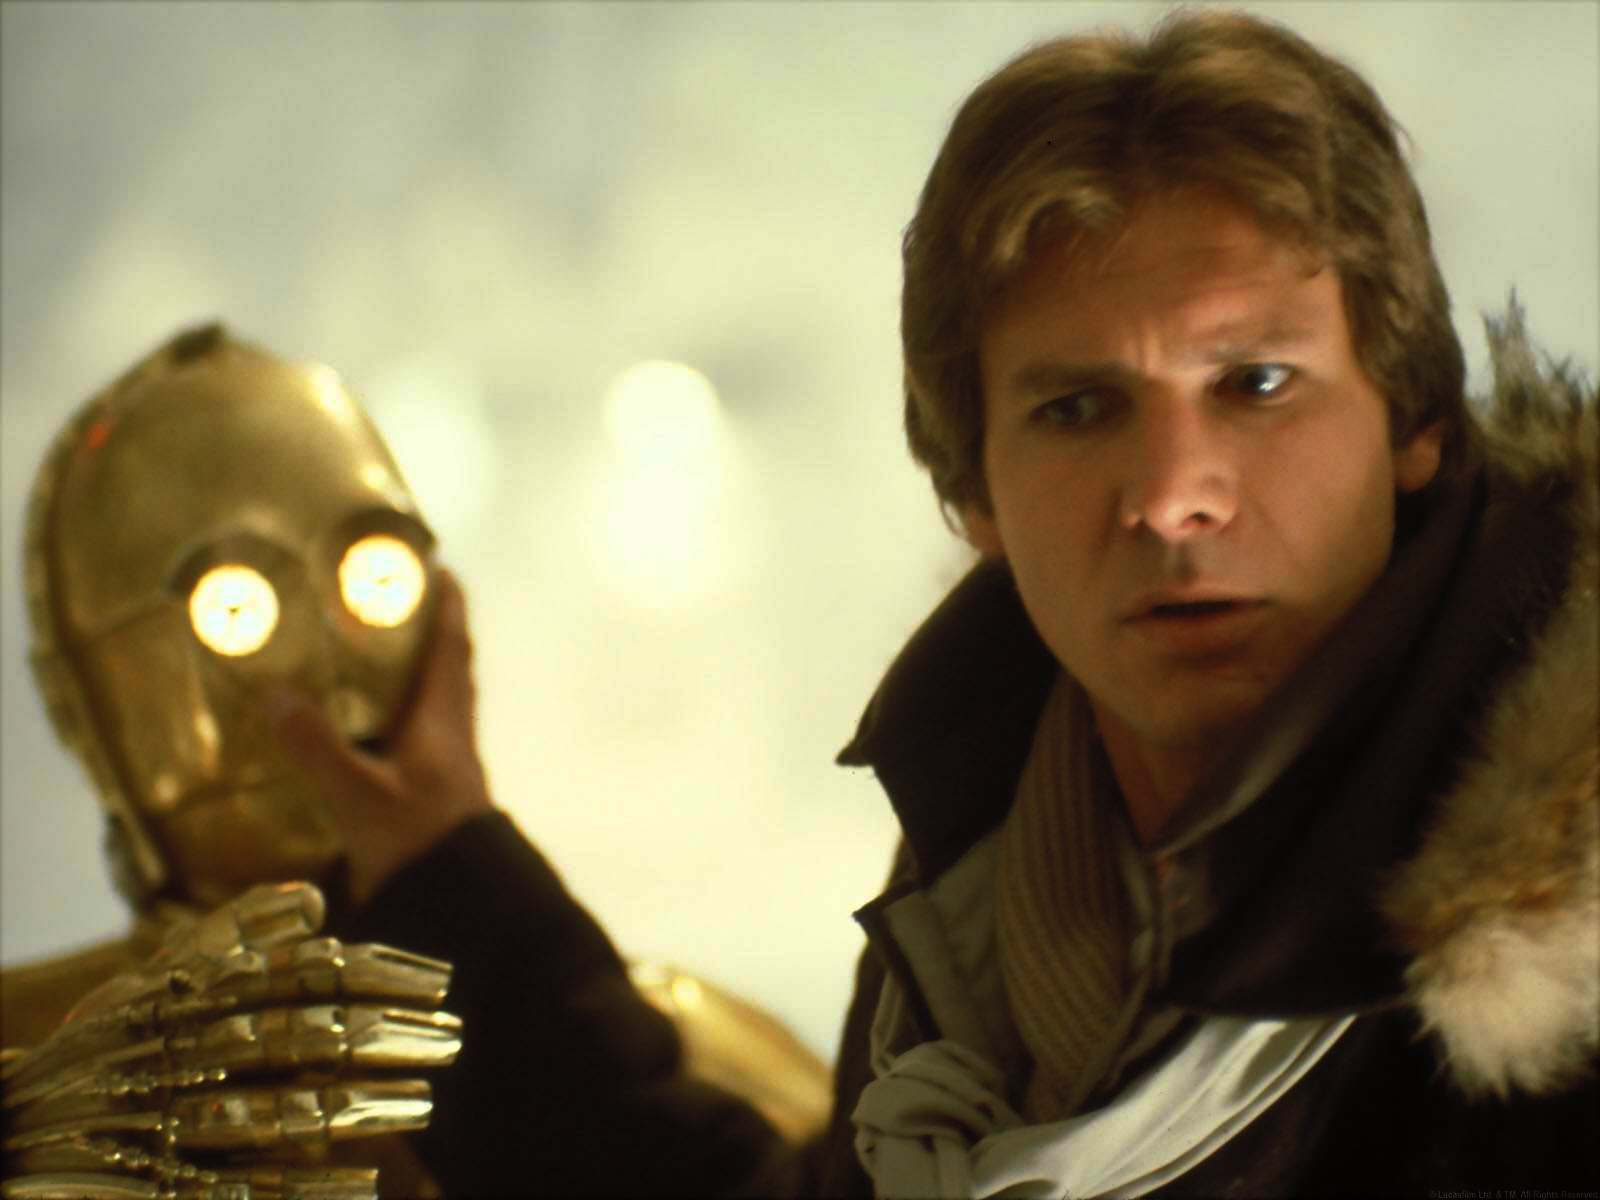 harrison ford images harrison in star wars:empire strikes back hd